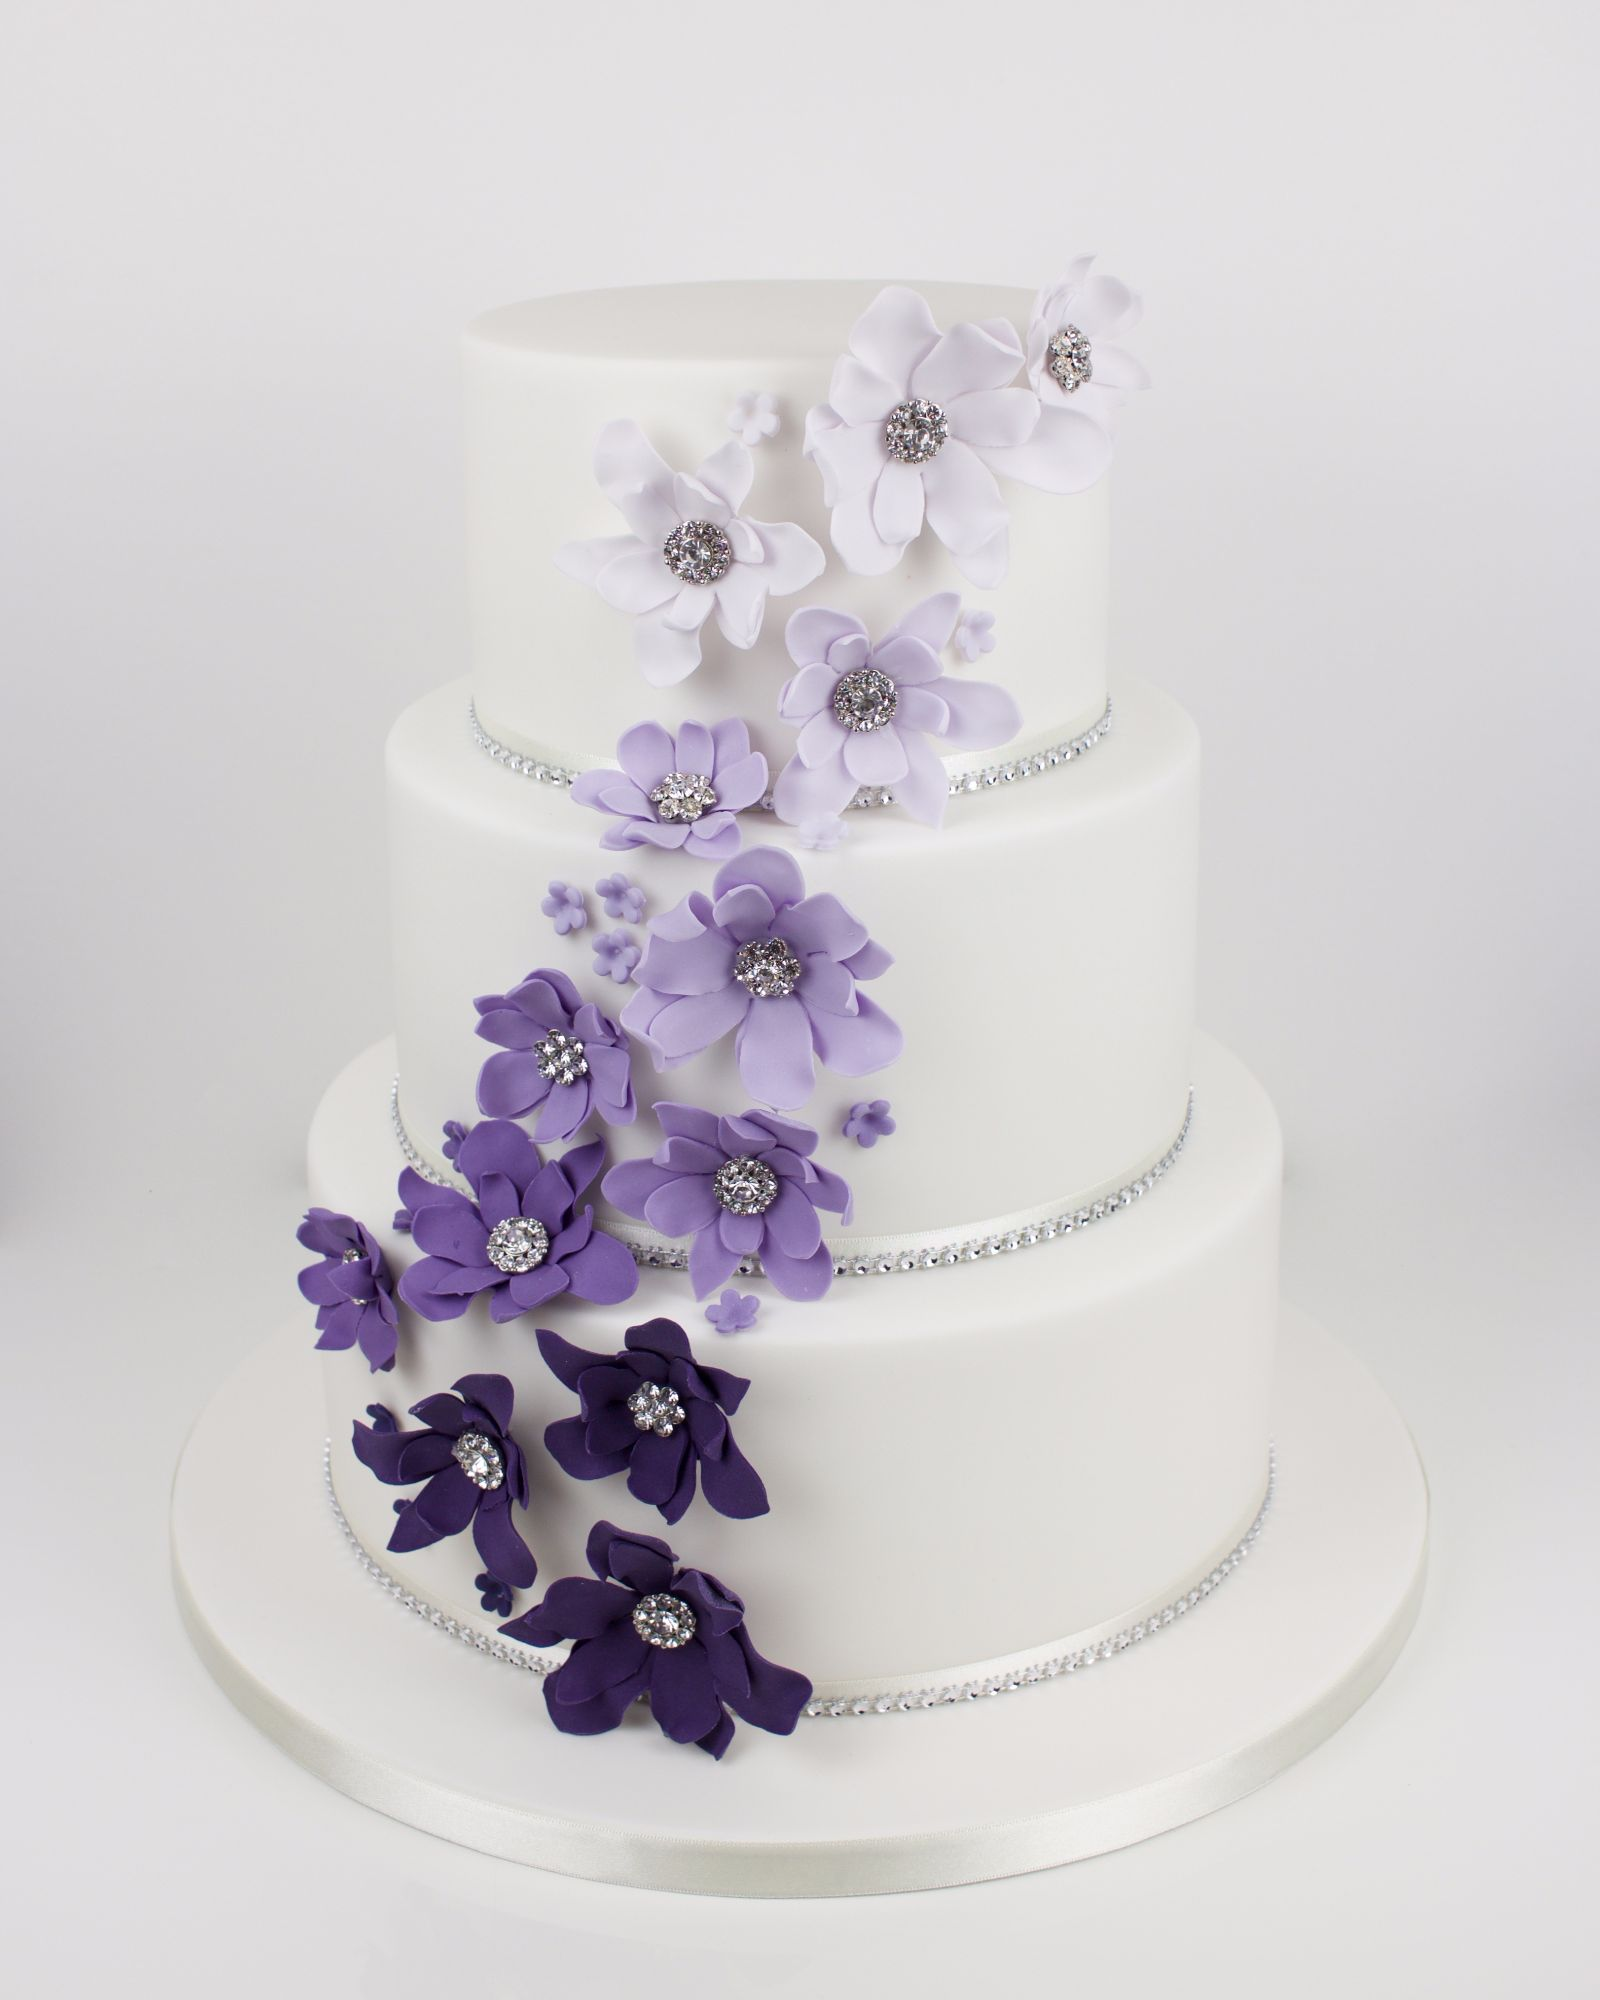 Ombre cascading flowers with diamante centres